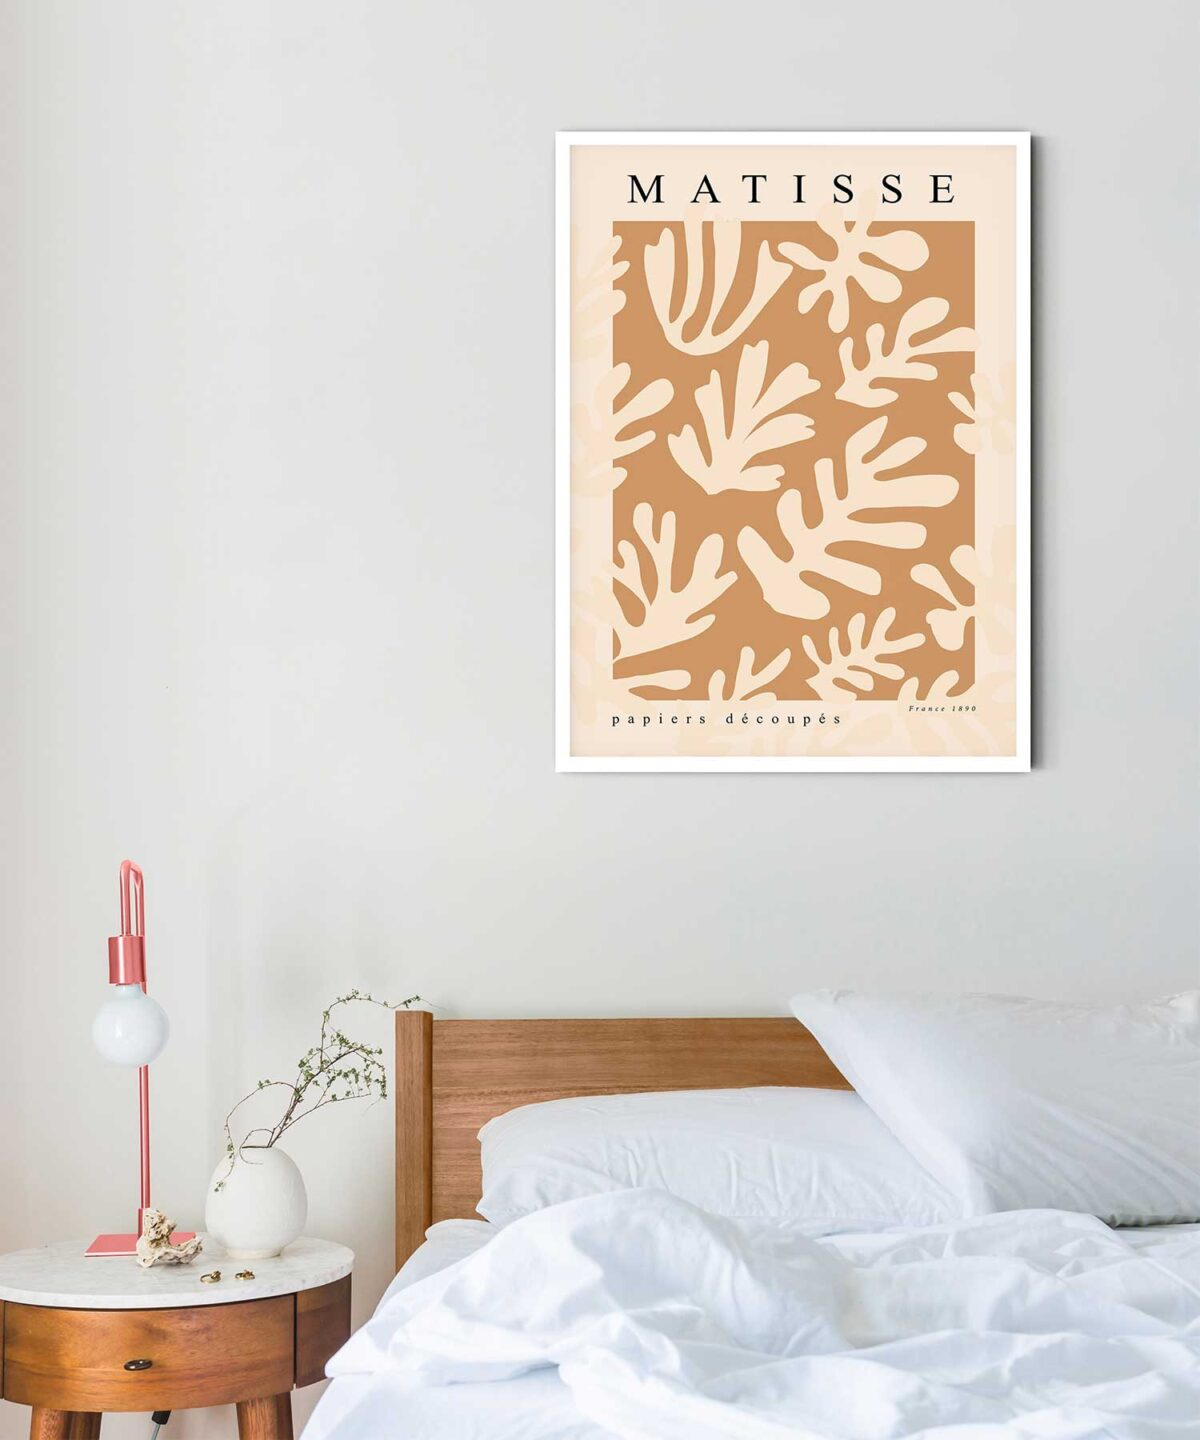 Matisse-inspired-Floral-No-1-Poster-on-Bedroom-Wall-Duwart